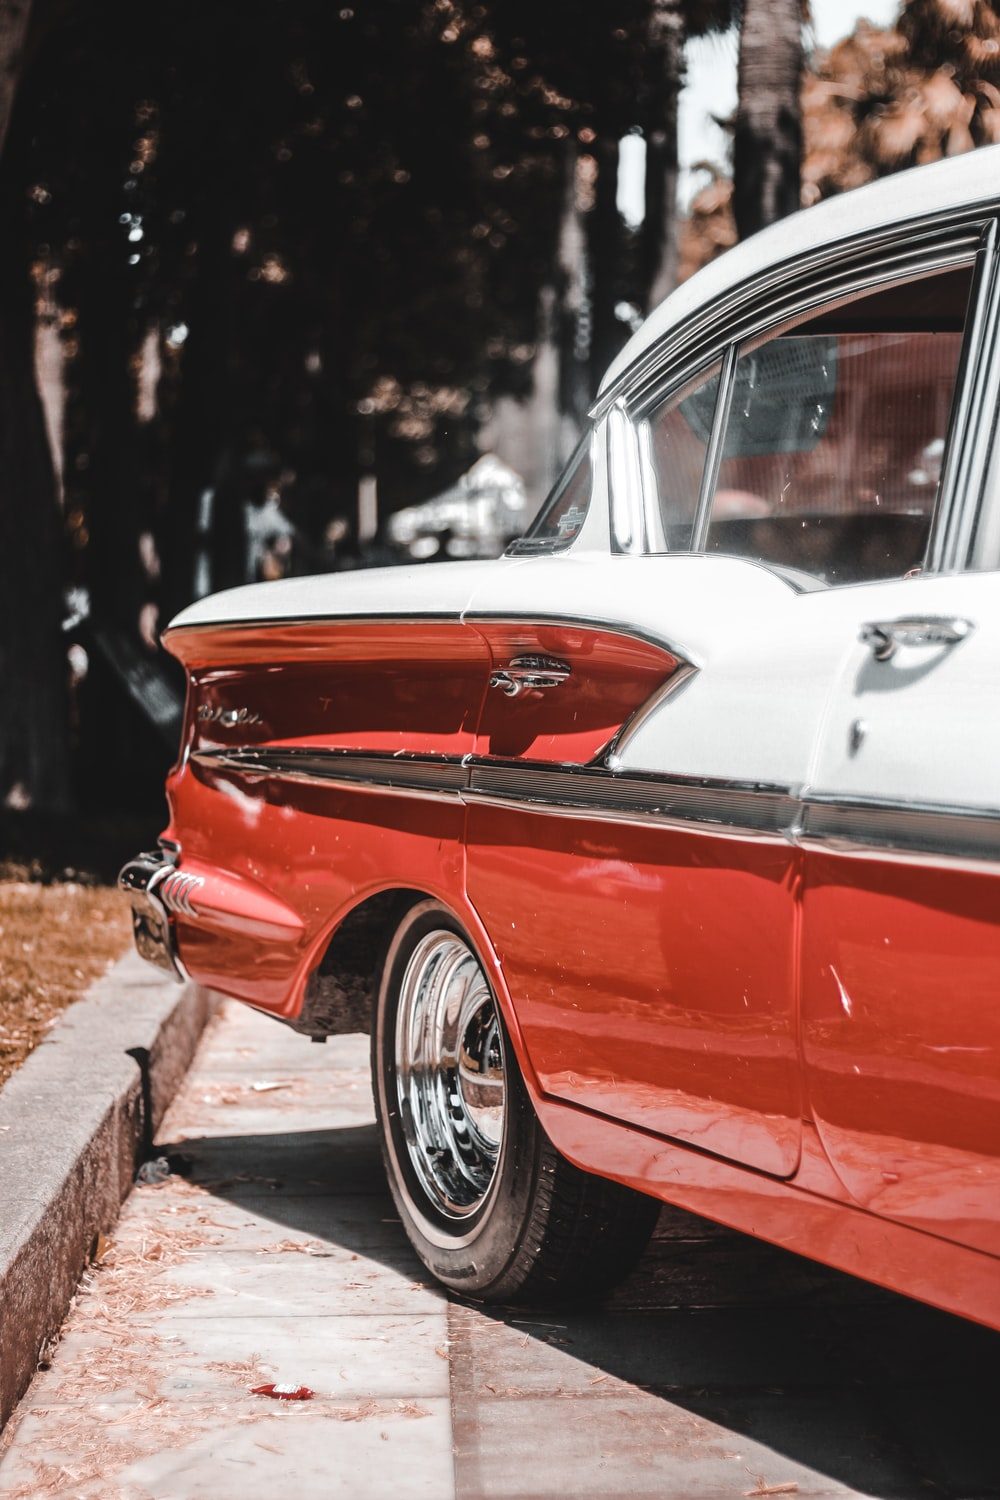 red and white car